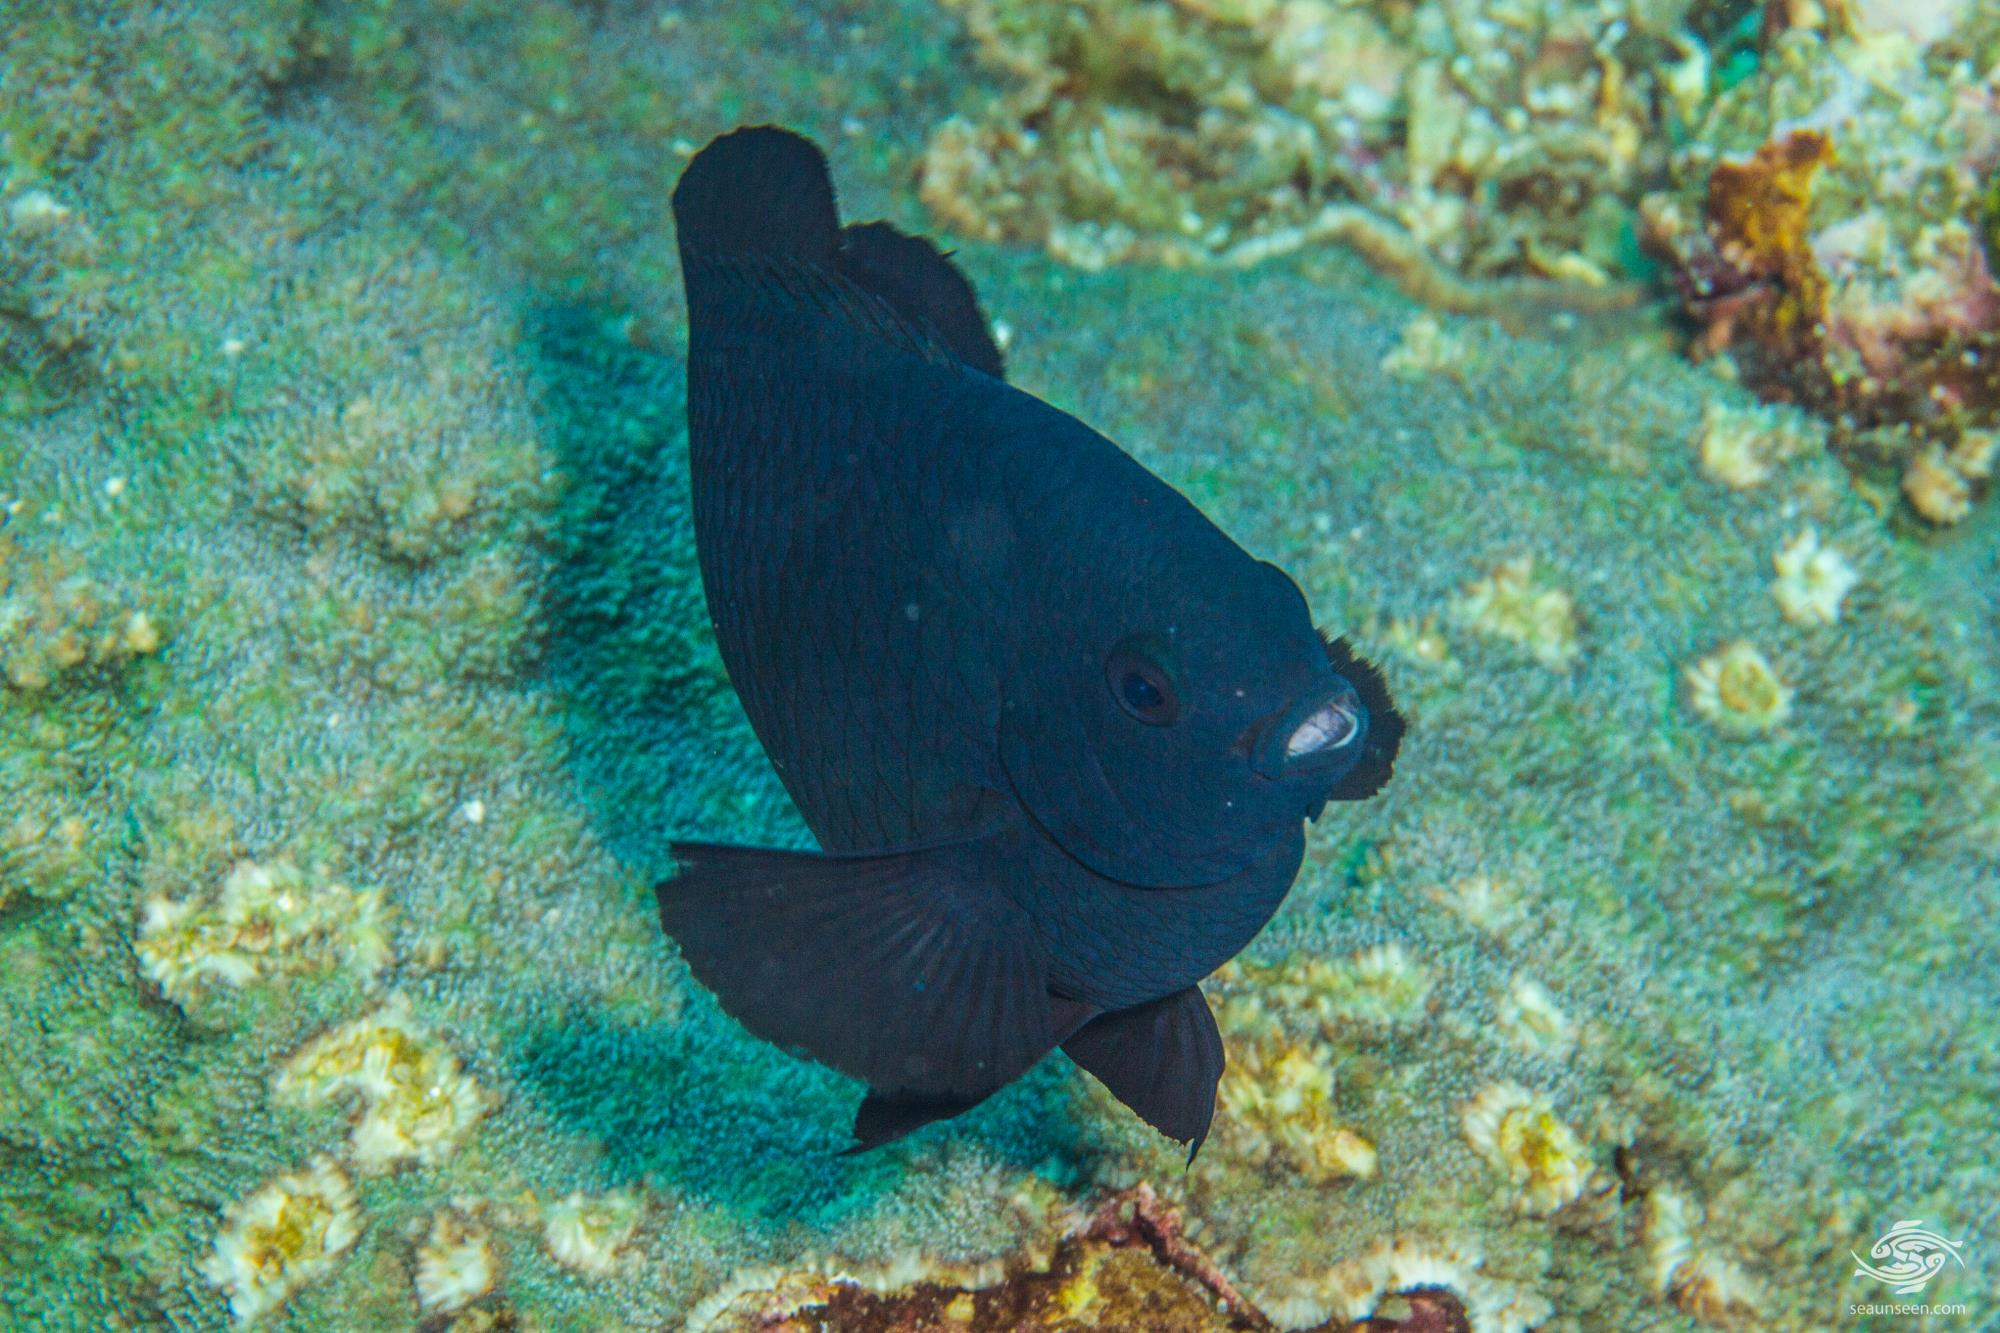 Black Damselfish ( Neoglyphidodon melas) is also known as the Bowtie Damselfish, the Bluefin Damselfish and in some areas as the Royal Damselfish